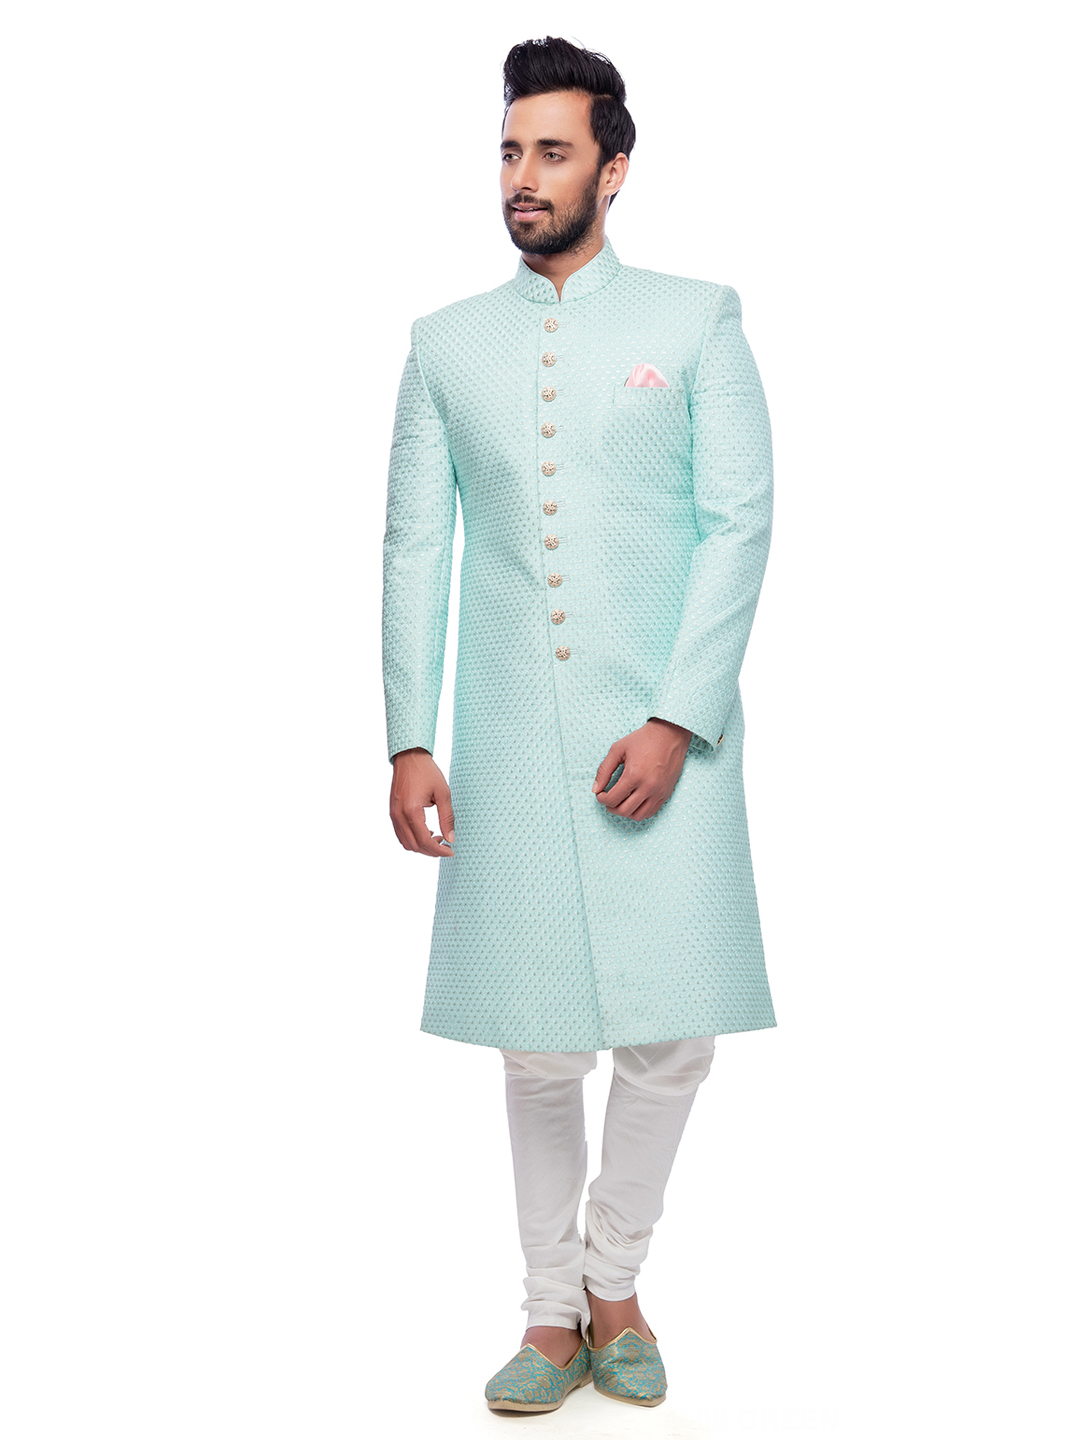 Sea green silk wedding wear sherwani - G3-MSH0162 | G3fashion.com